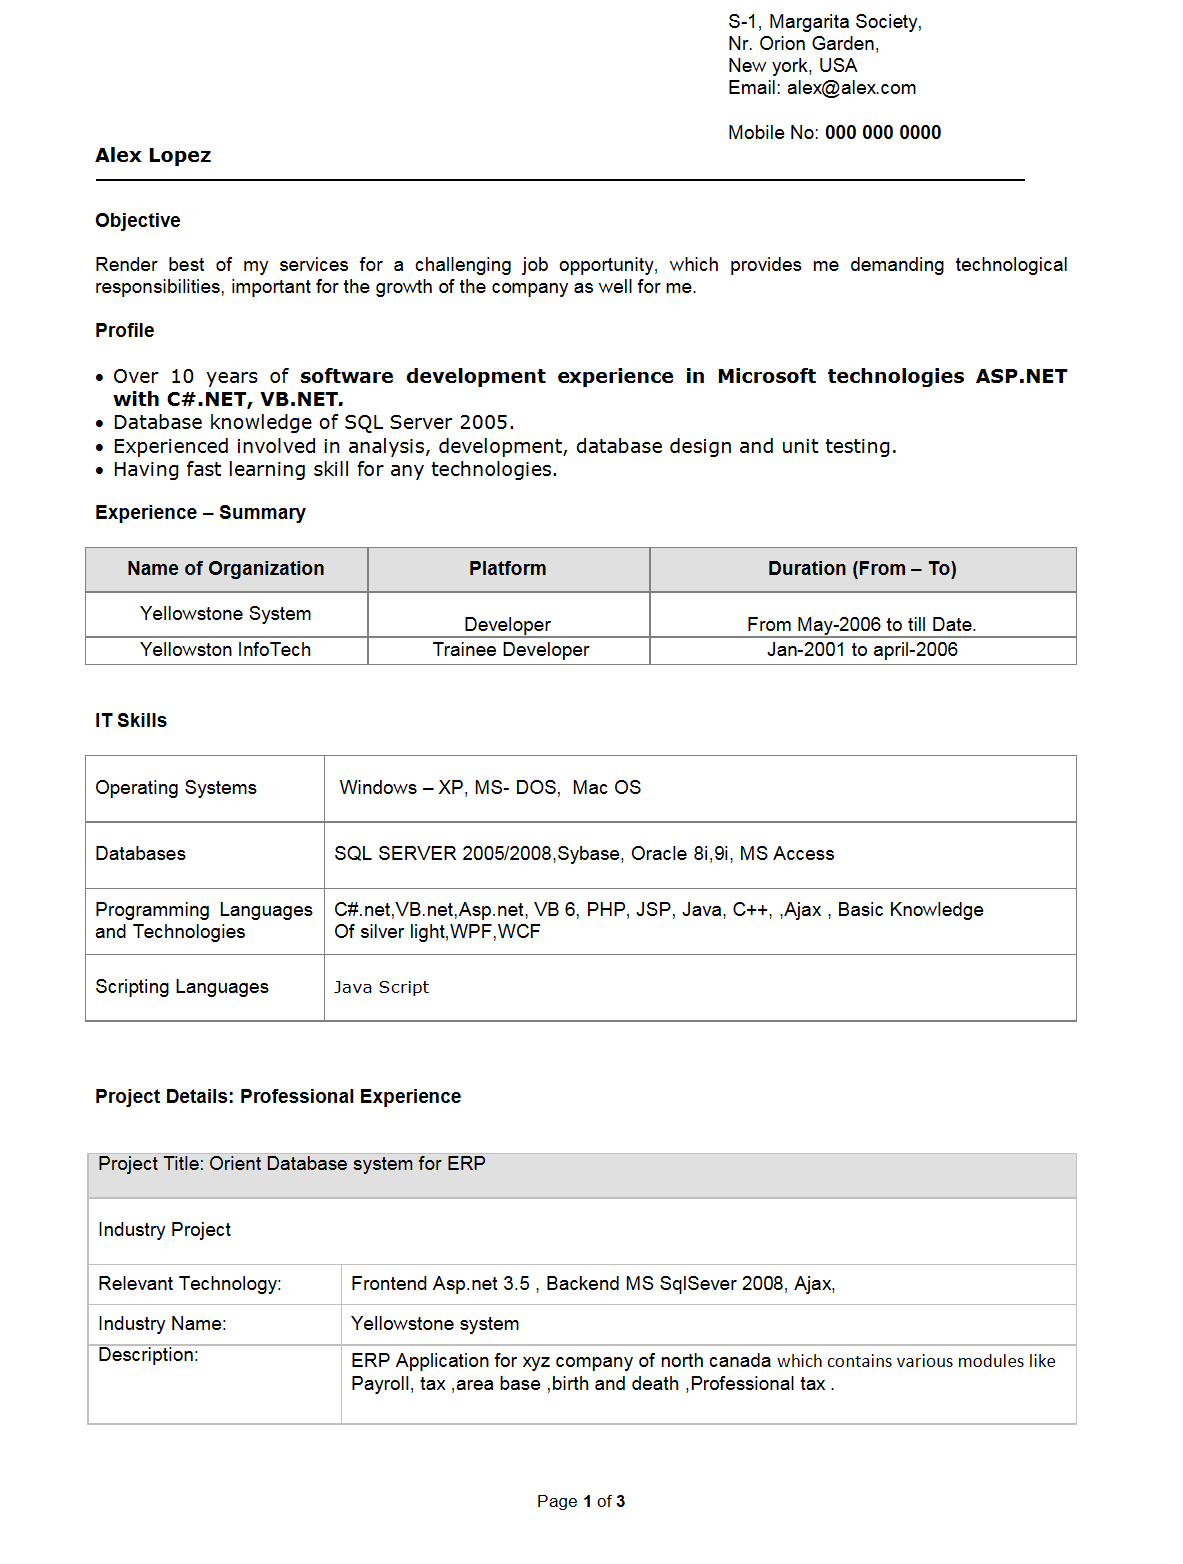 resume sles of software engineer fresher application